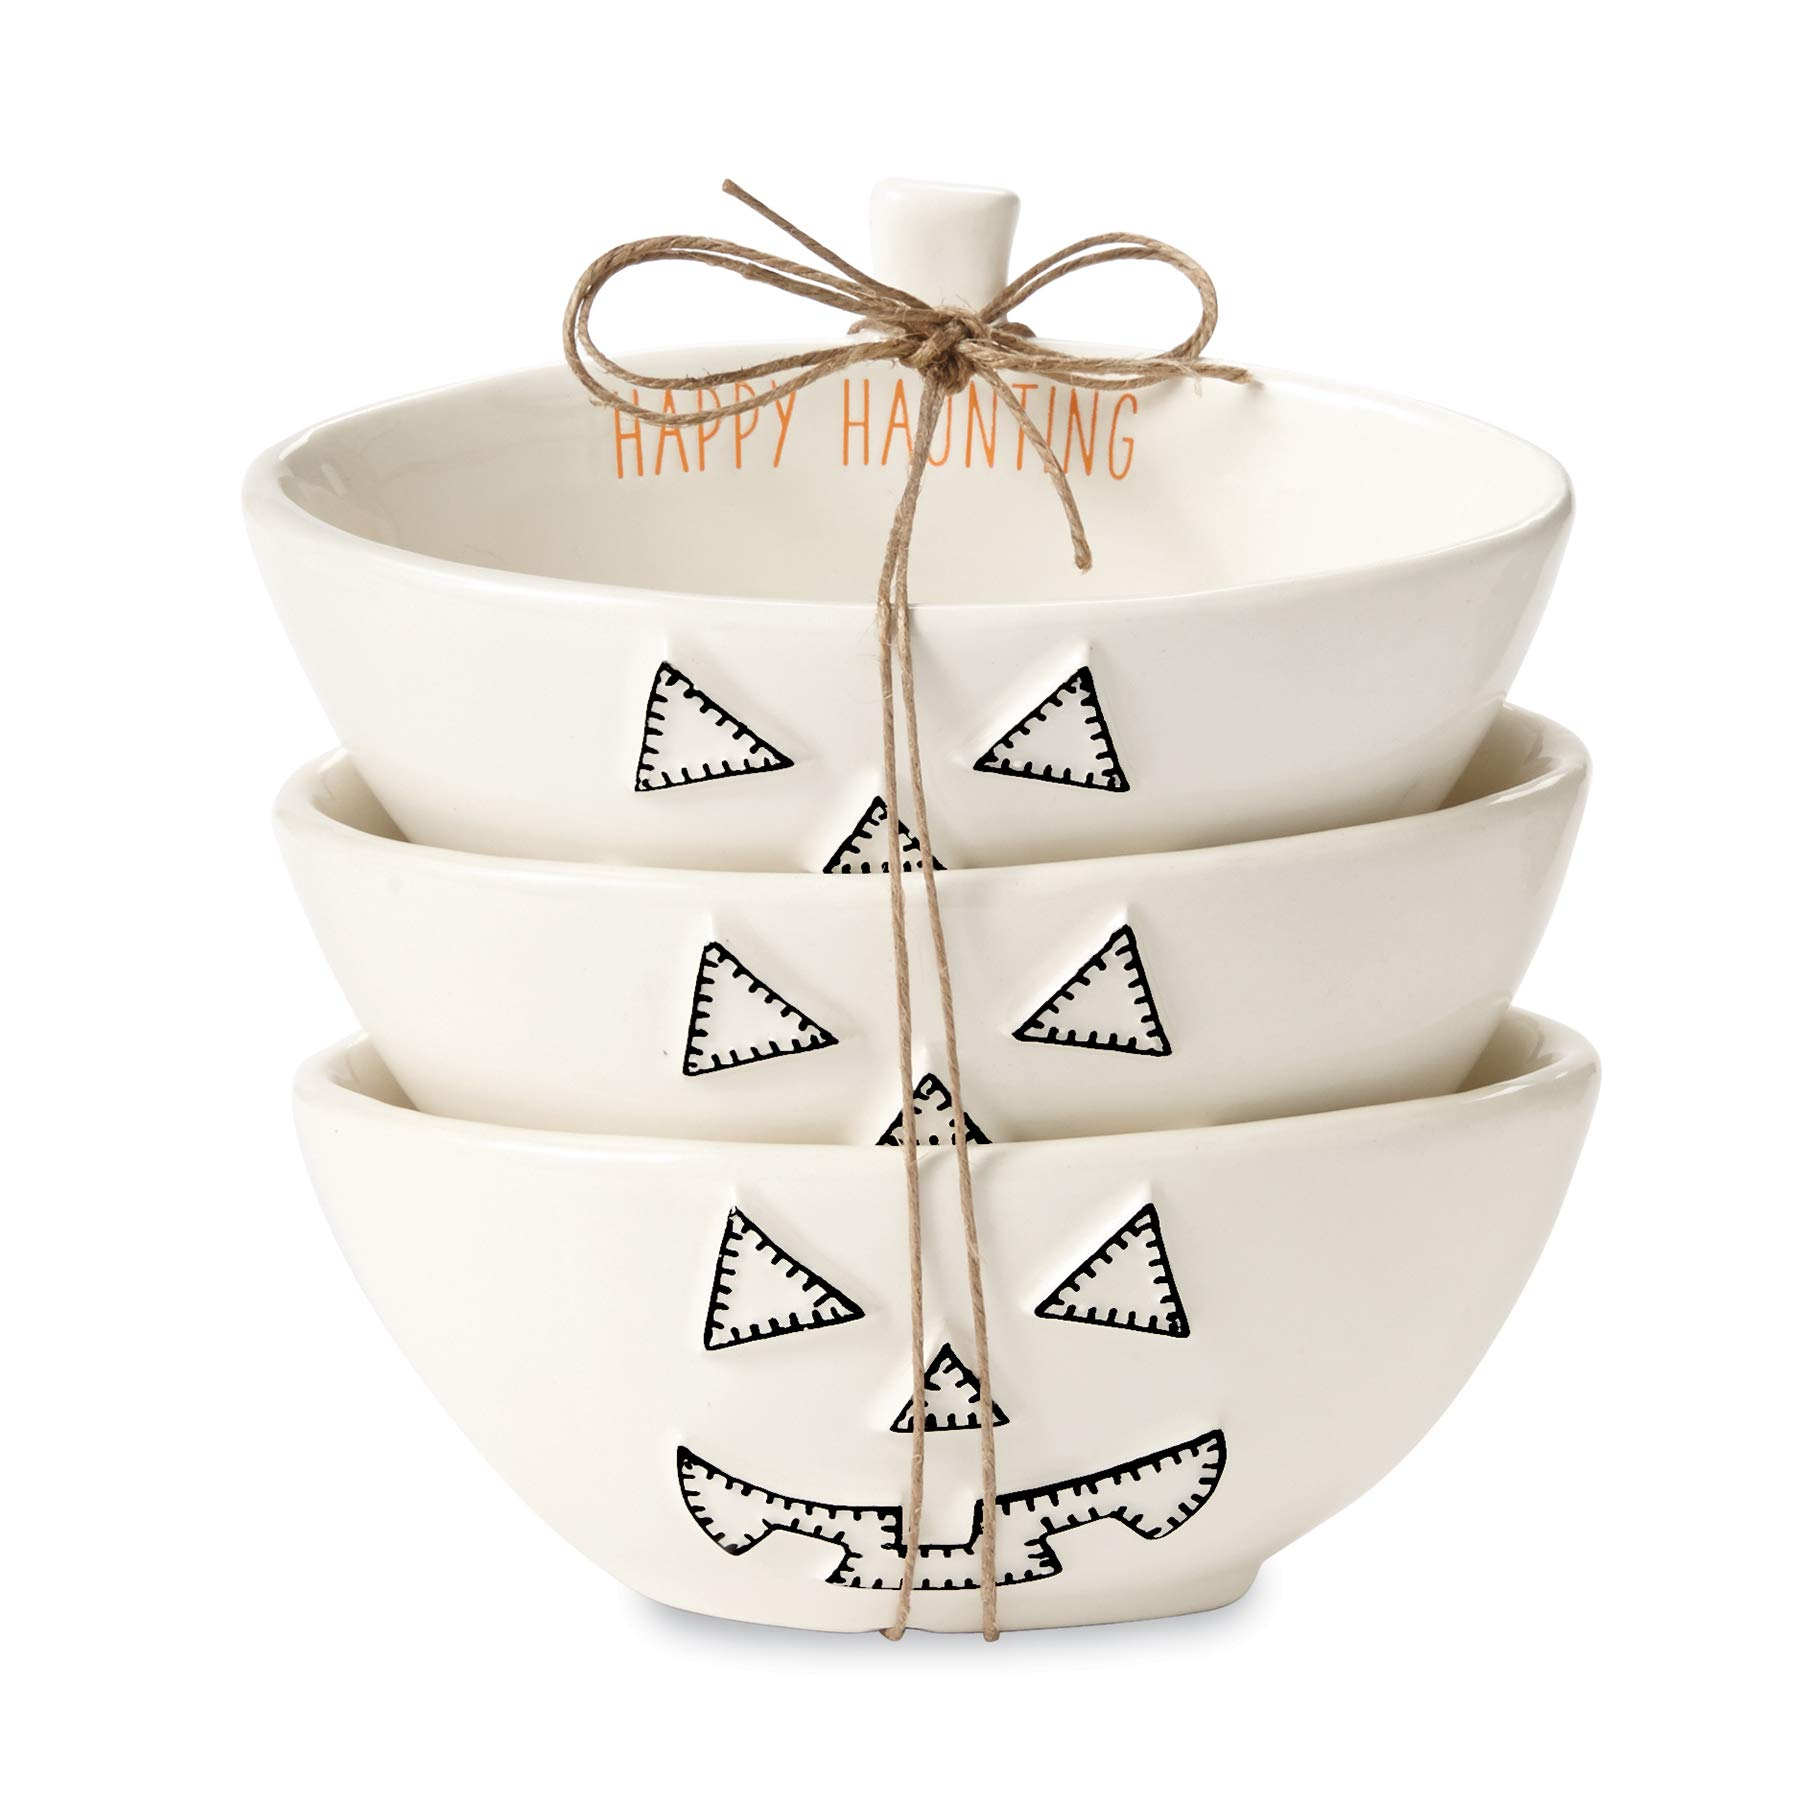 Mud Pie 4855084P Nested Pumpkin Set of 3 Dip Cup Set, One size, White by Mud Pie